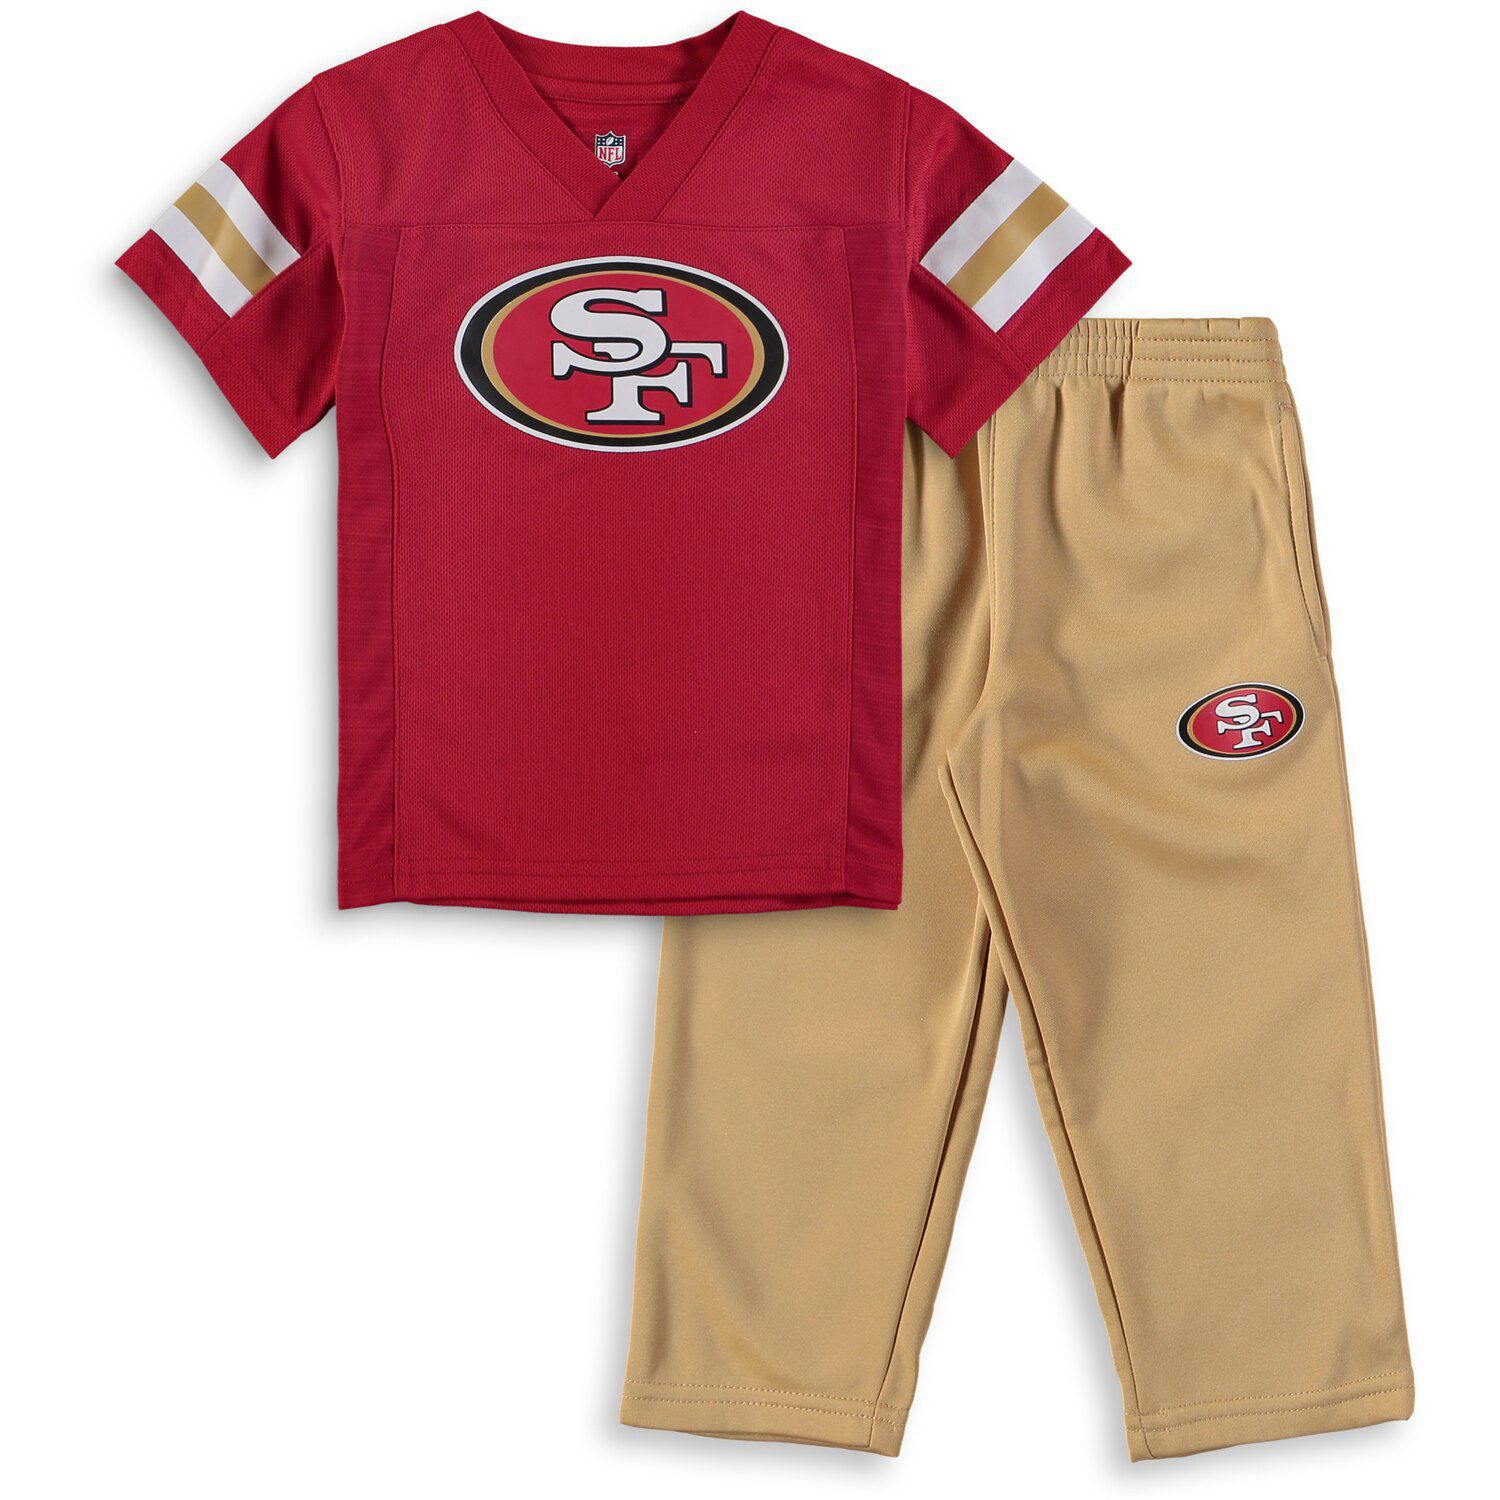 49ers toddler jersey